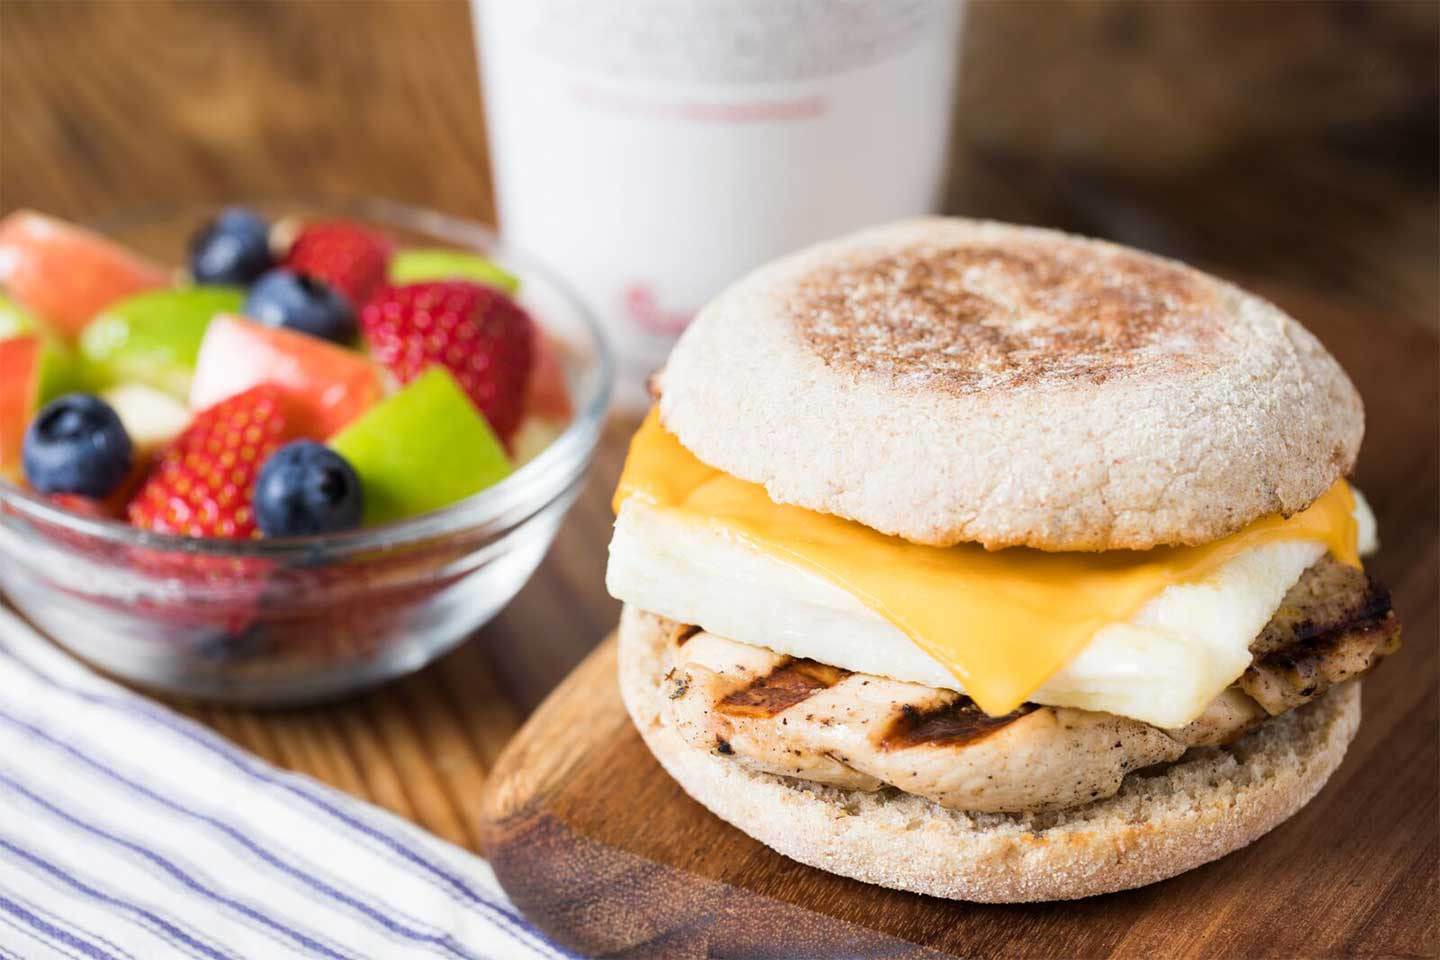 10 Chick-fil-A Breakfasts Under 400 Calories